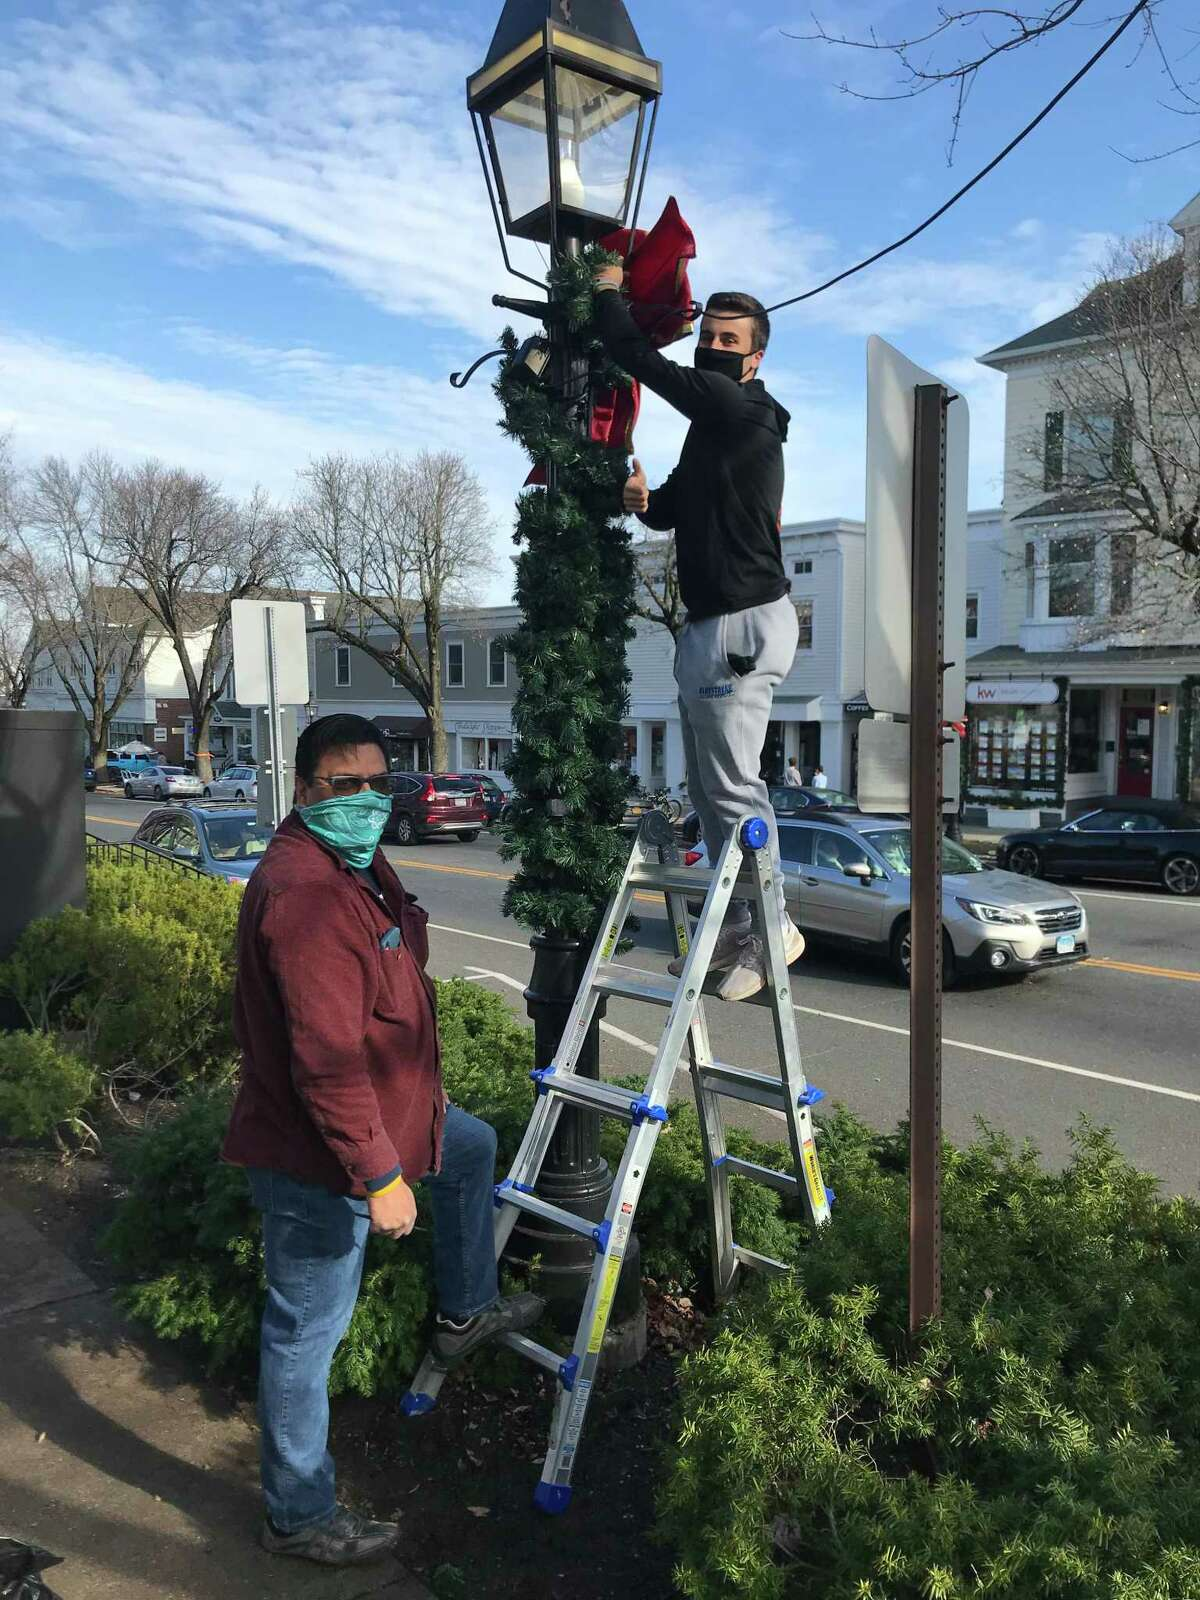 American Legion Post 78 in Ridgefield Legionnaire Steve Barrientos and Legionnaire Andrew Filippelli decorate a lamppost on Main Street in the town on Saturday, Nov. 21 as part of their annual decorating of lampposts in the town.